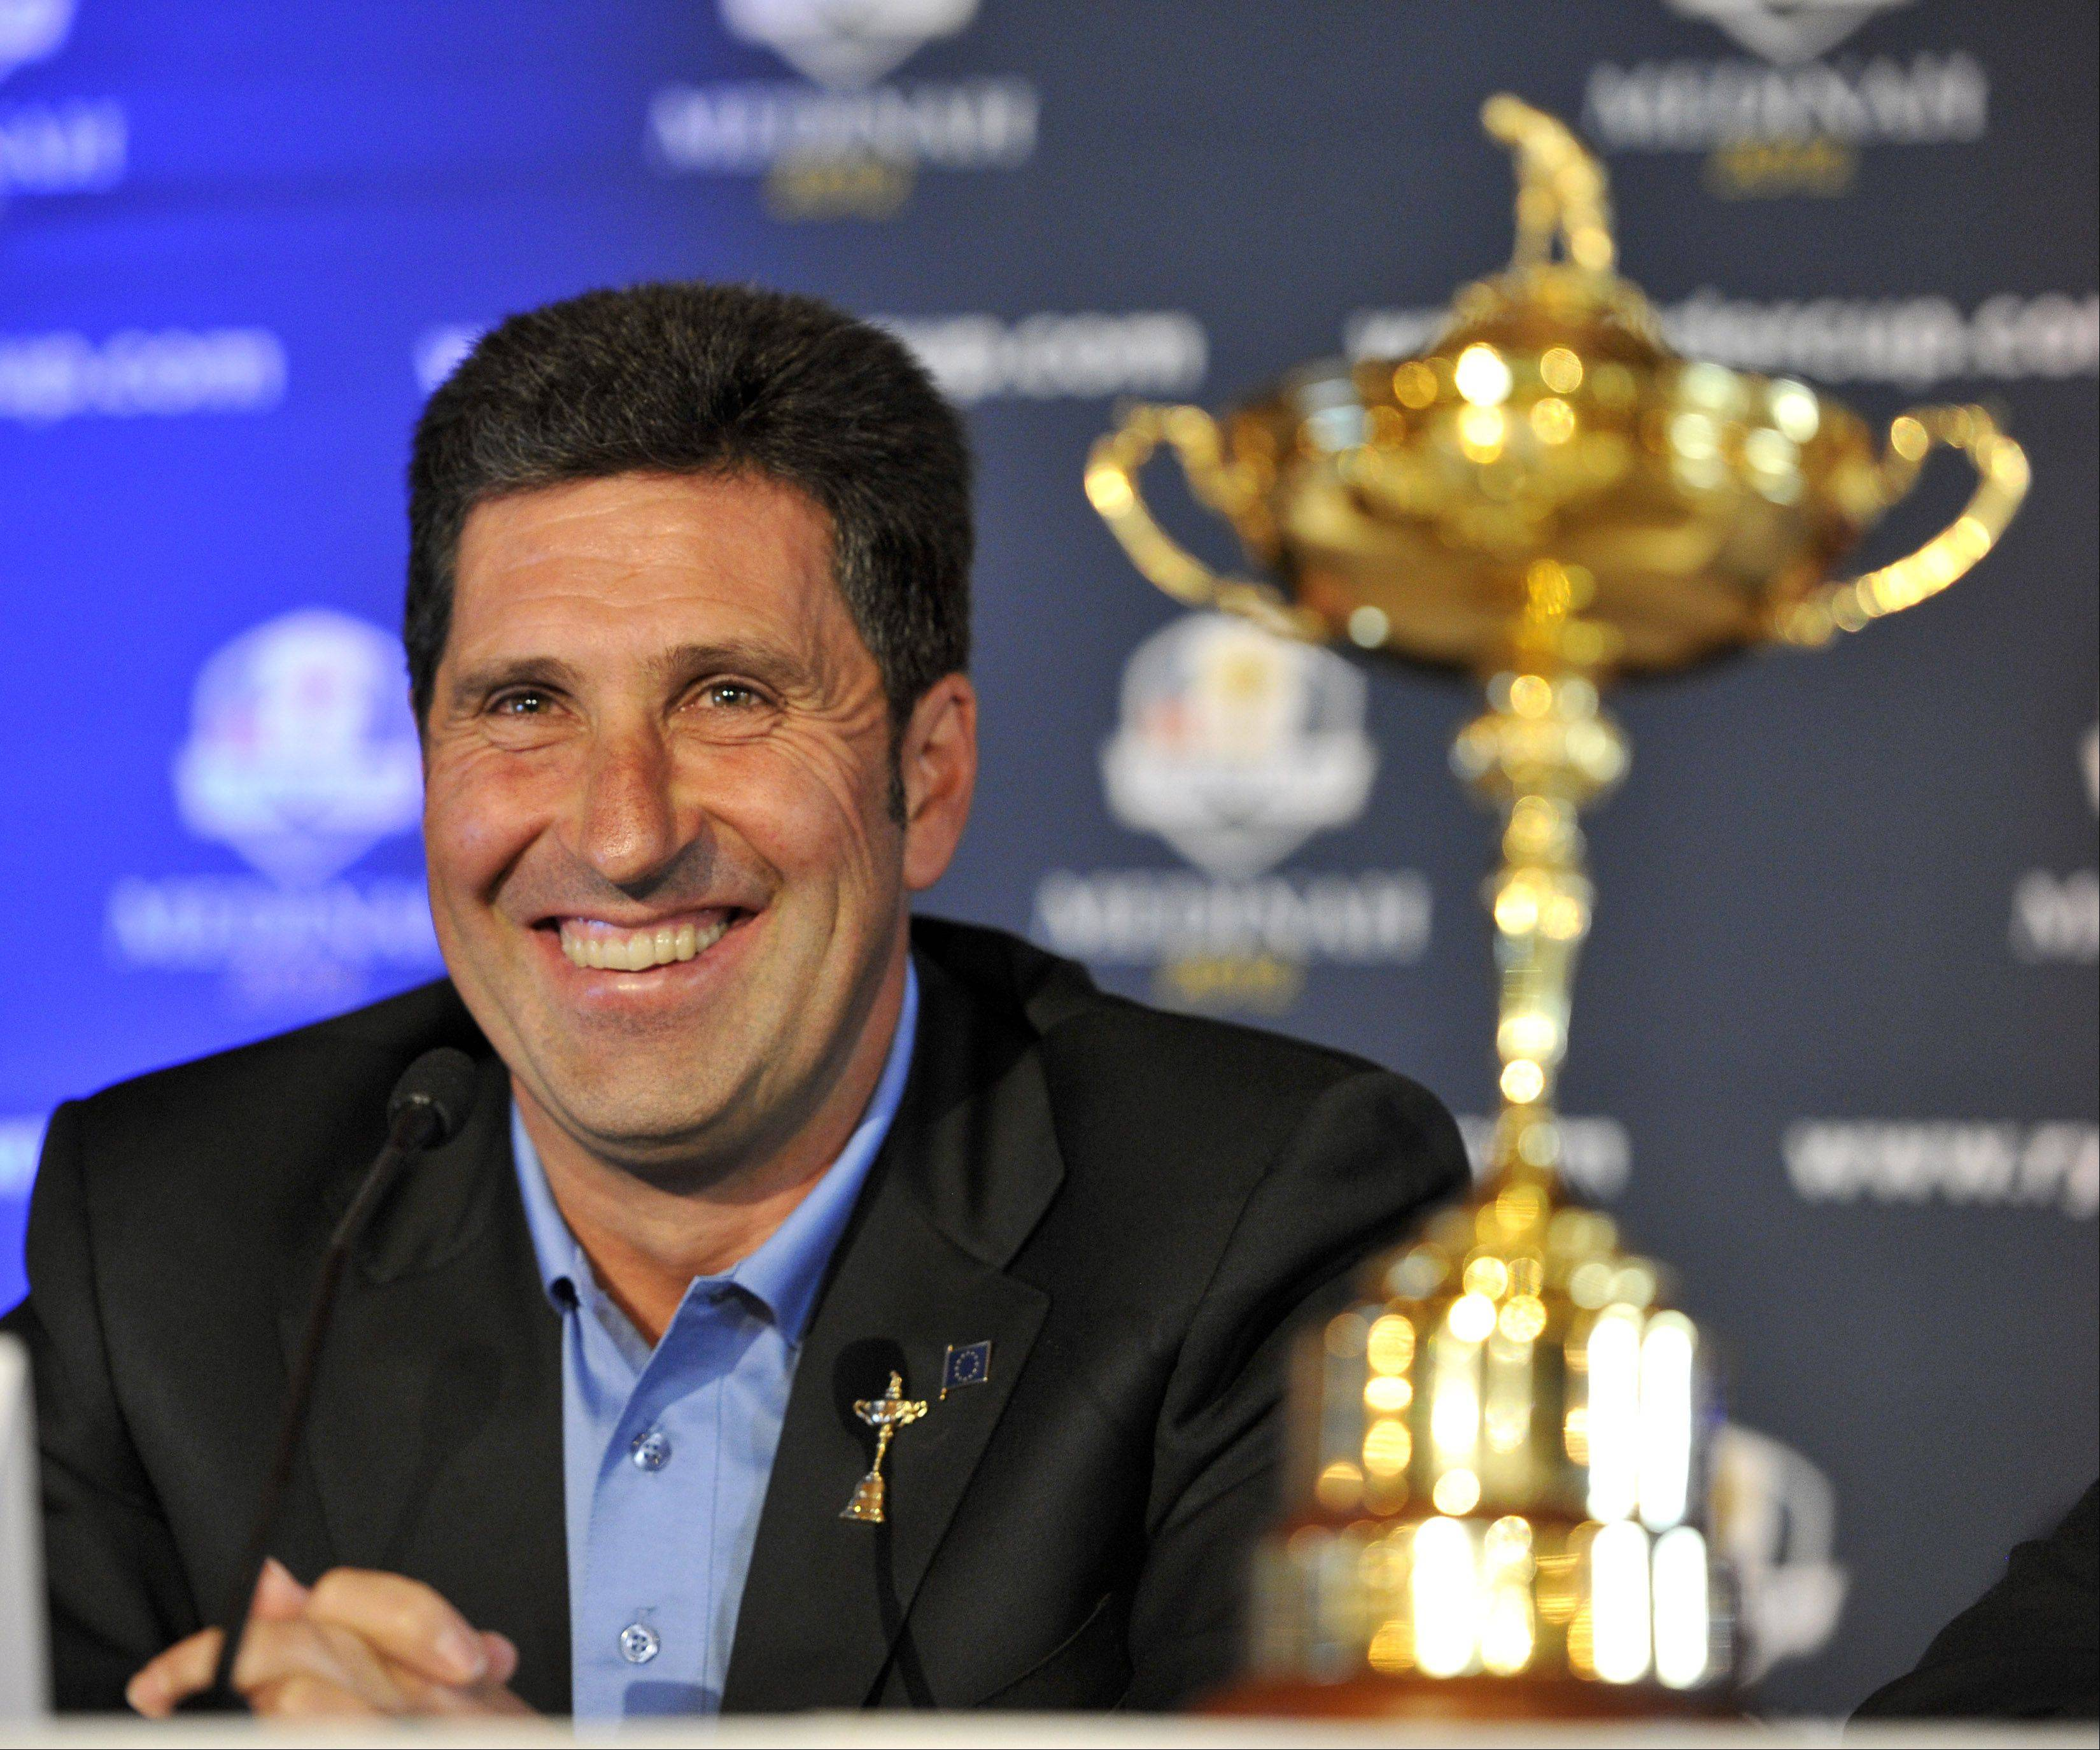 2012 European Ryder Cup captain Jose MarÌa Olazabal has reason to be confident. His team is the defending champion.